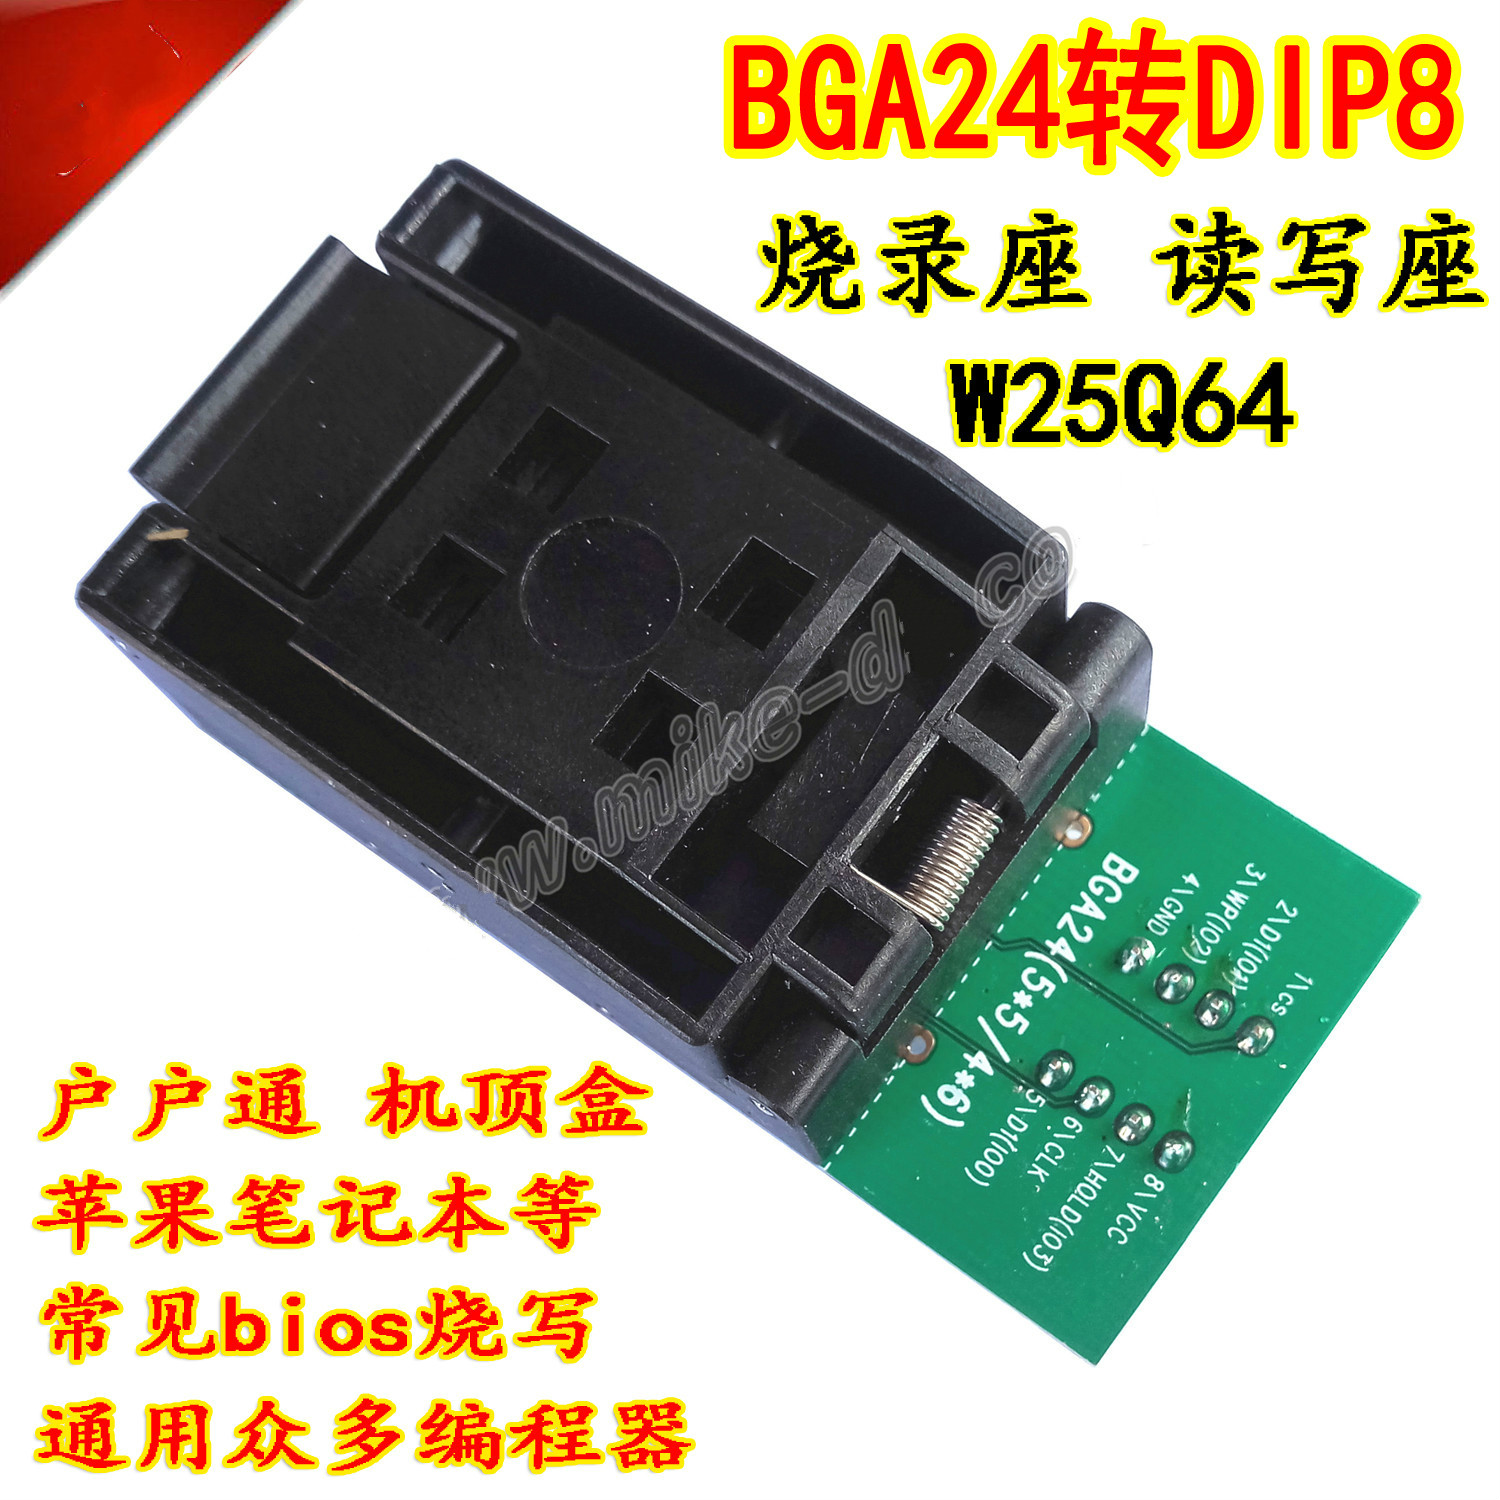 BGA24 Test Seat to DIP8 Burner, 9 Household Top Box Brush Machine Programmer W25Q64 Burn ne602an ne602 dip8